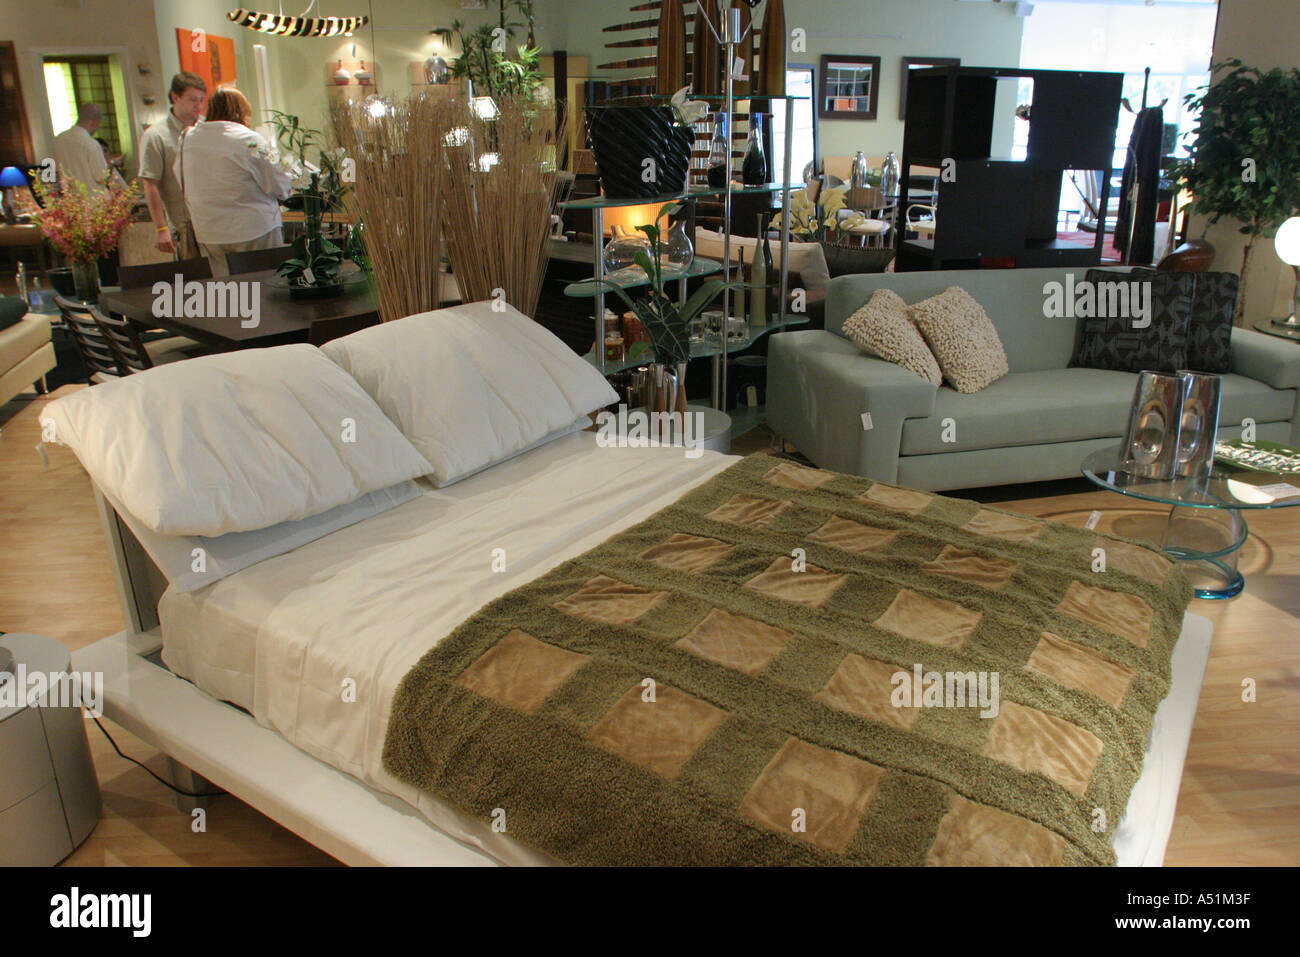 Charmant Miami Florida South Dixie Highway Furniture Store Show Room Italian Made  Platform Bed